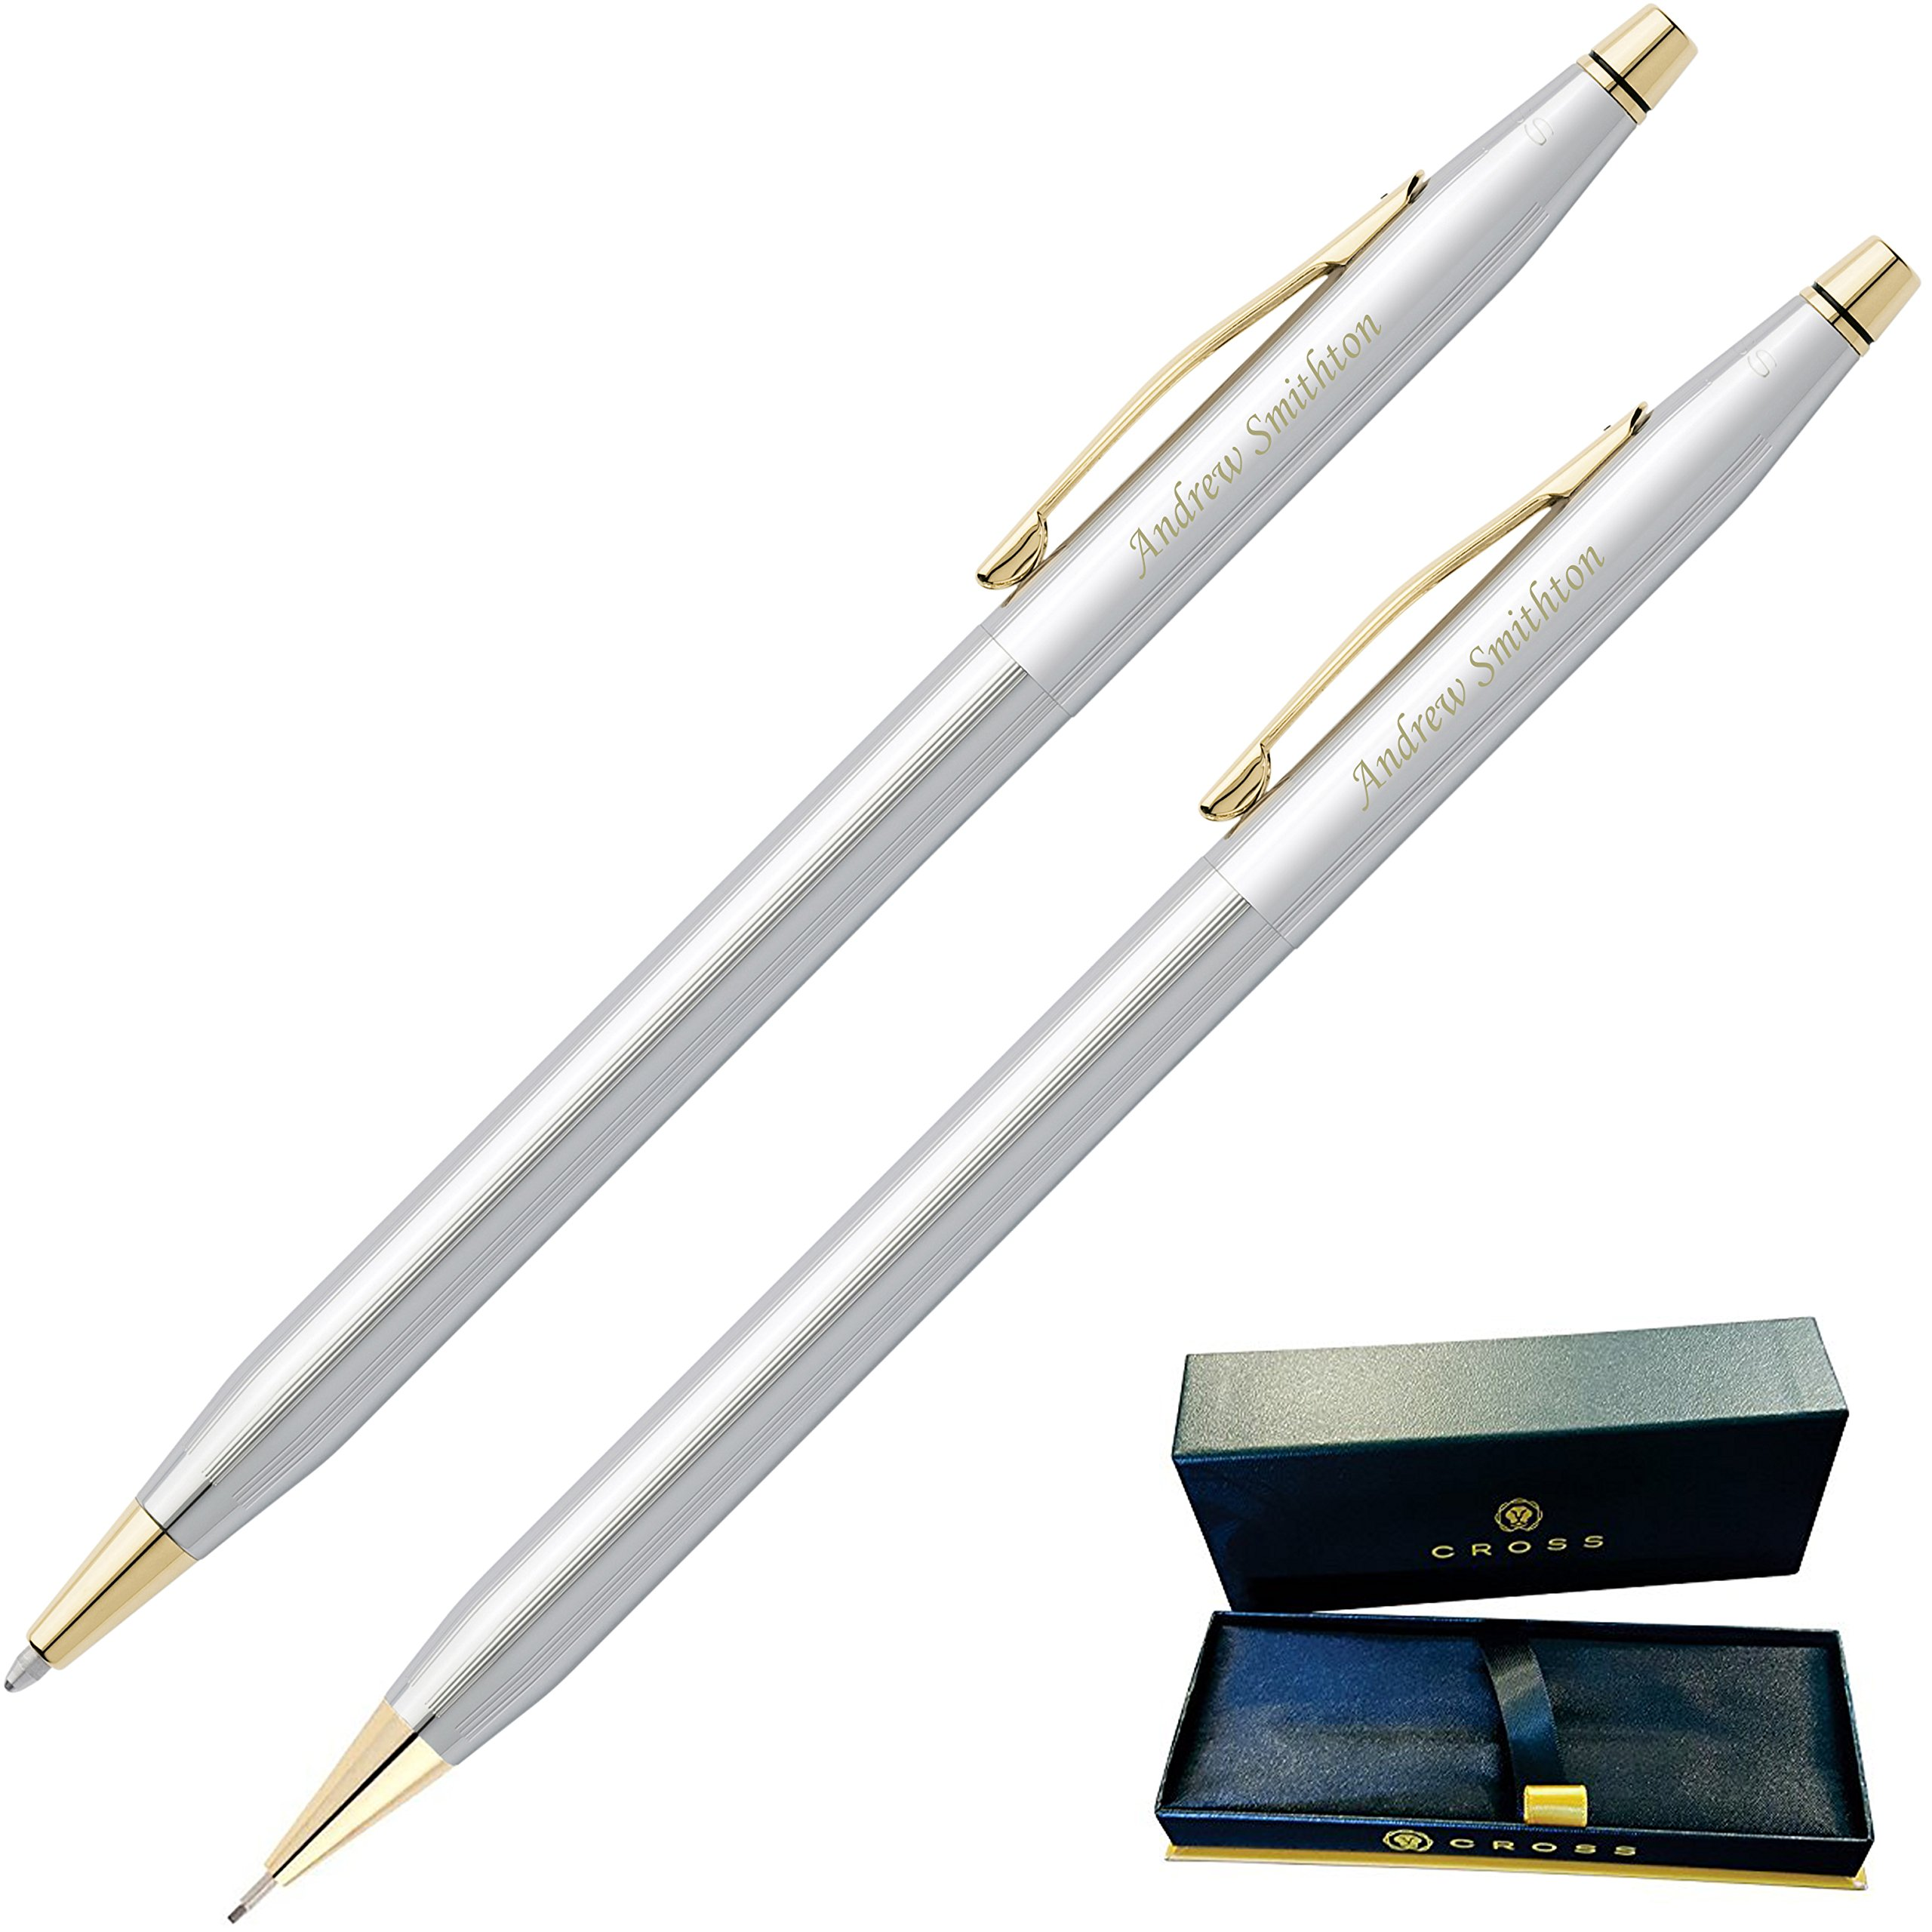 Dayspring Pens - Engraved / Personalized CROSS Classic Century Medalist Pen & Pencil Set 330105. Custom Engraved Fast!